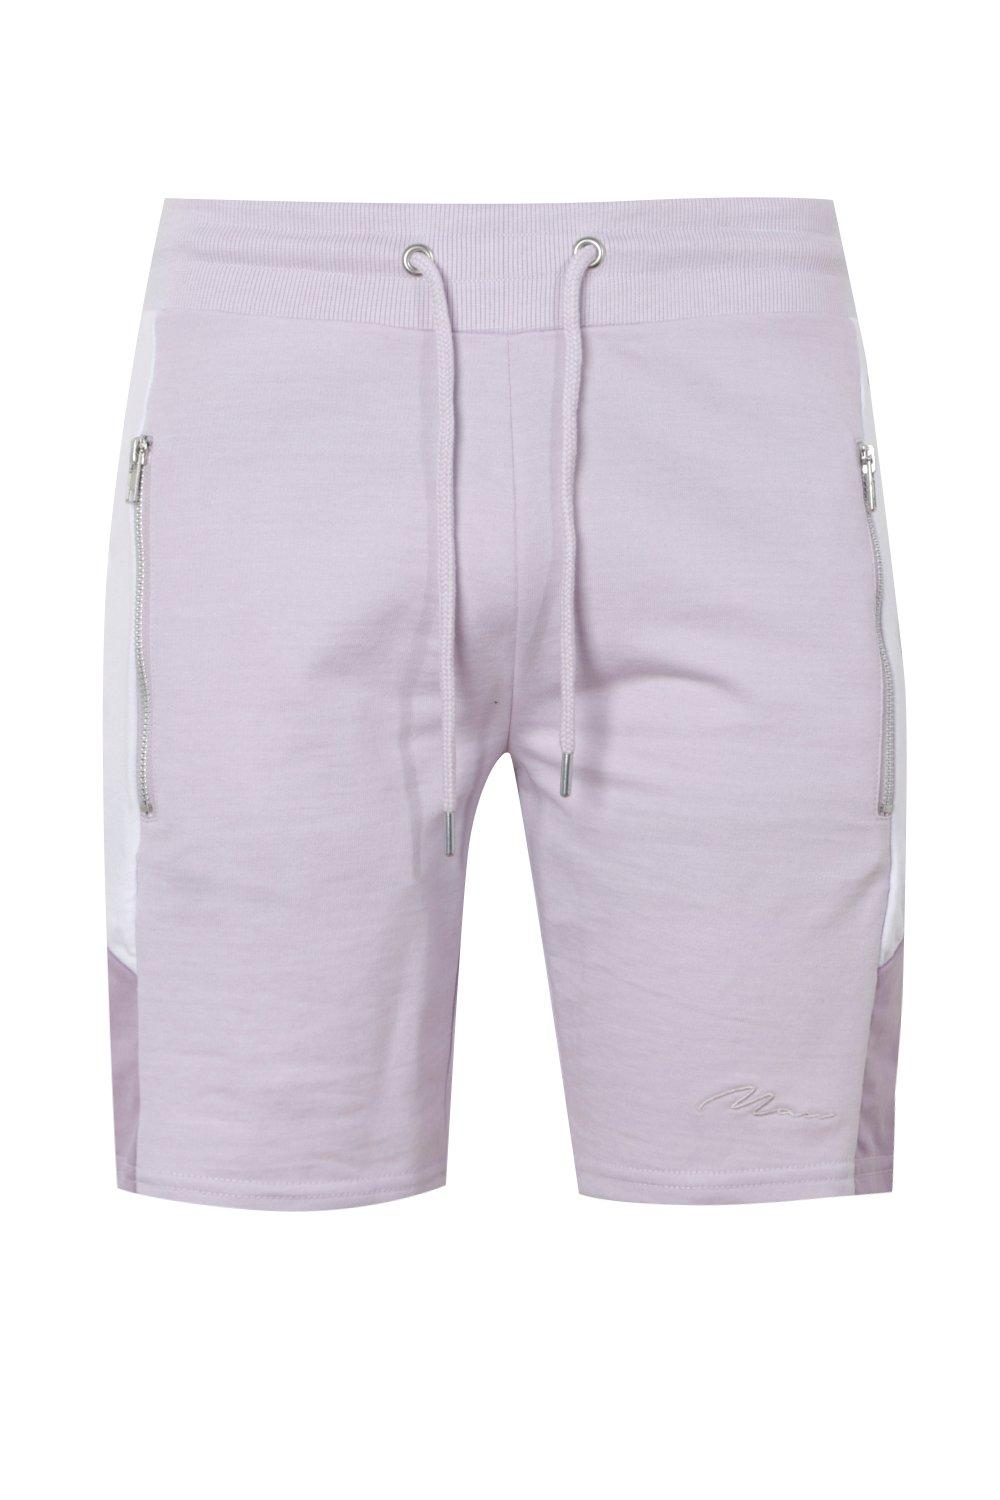 boohooMAN lilac MAN Signature Slim Mid Length Shorts